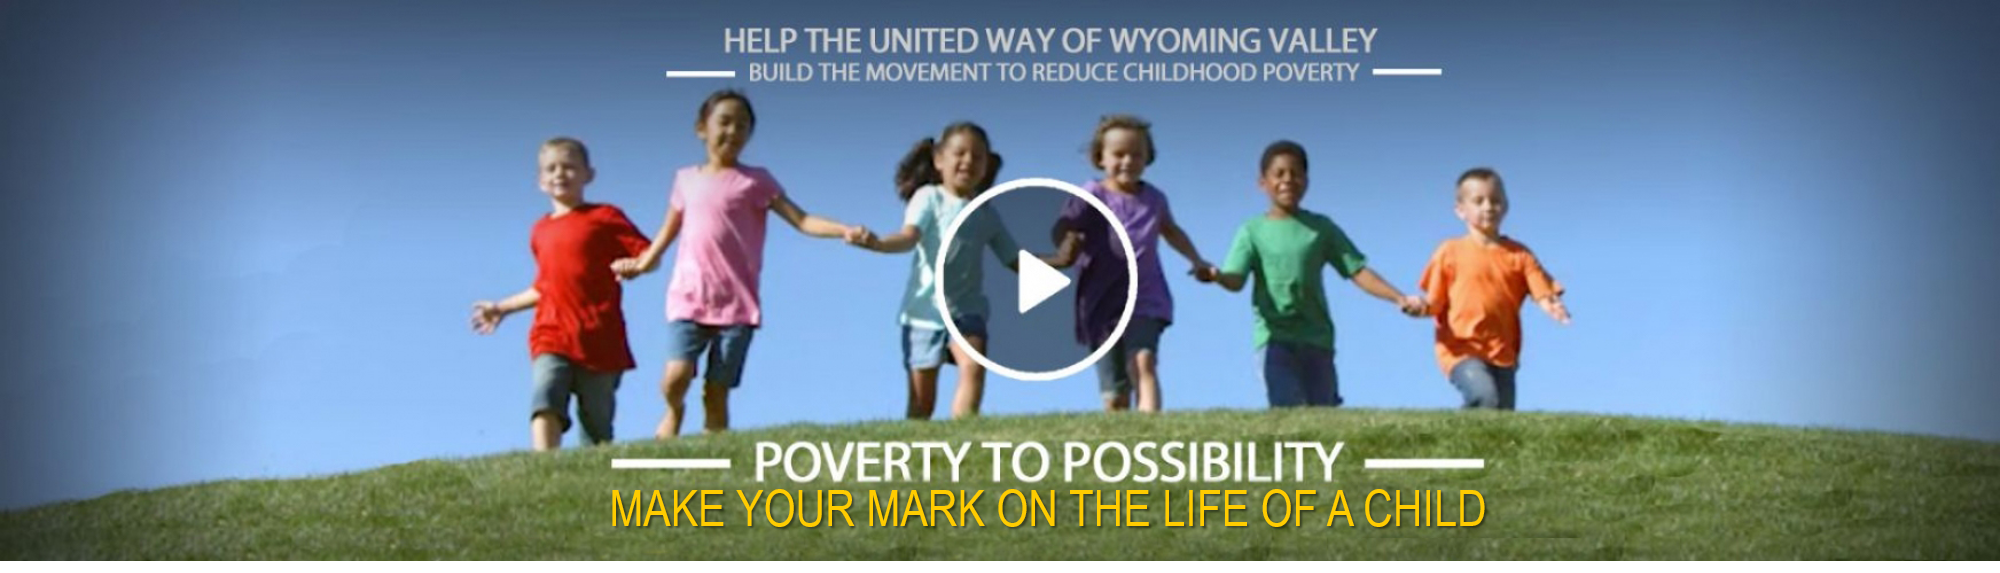 PLEASE HELP THE UNITED WAY OF WYOMING VALLEY </br> MAKE YOUR MARK ON THE LIFE OF A CHILD.